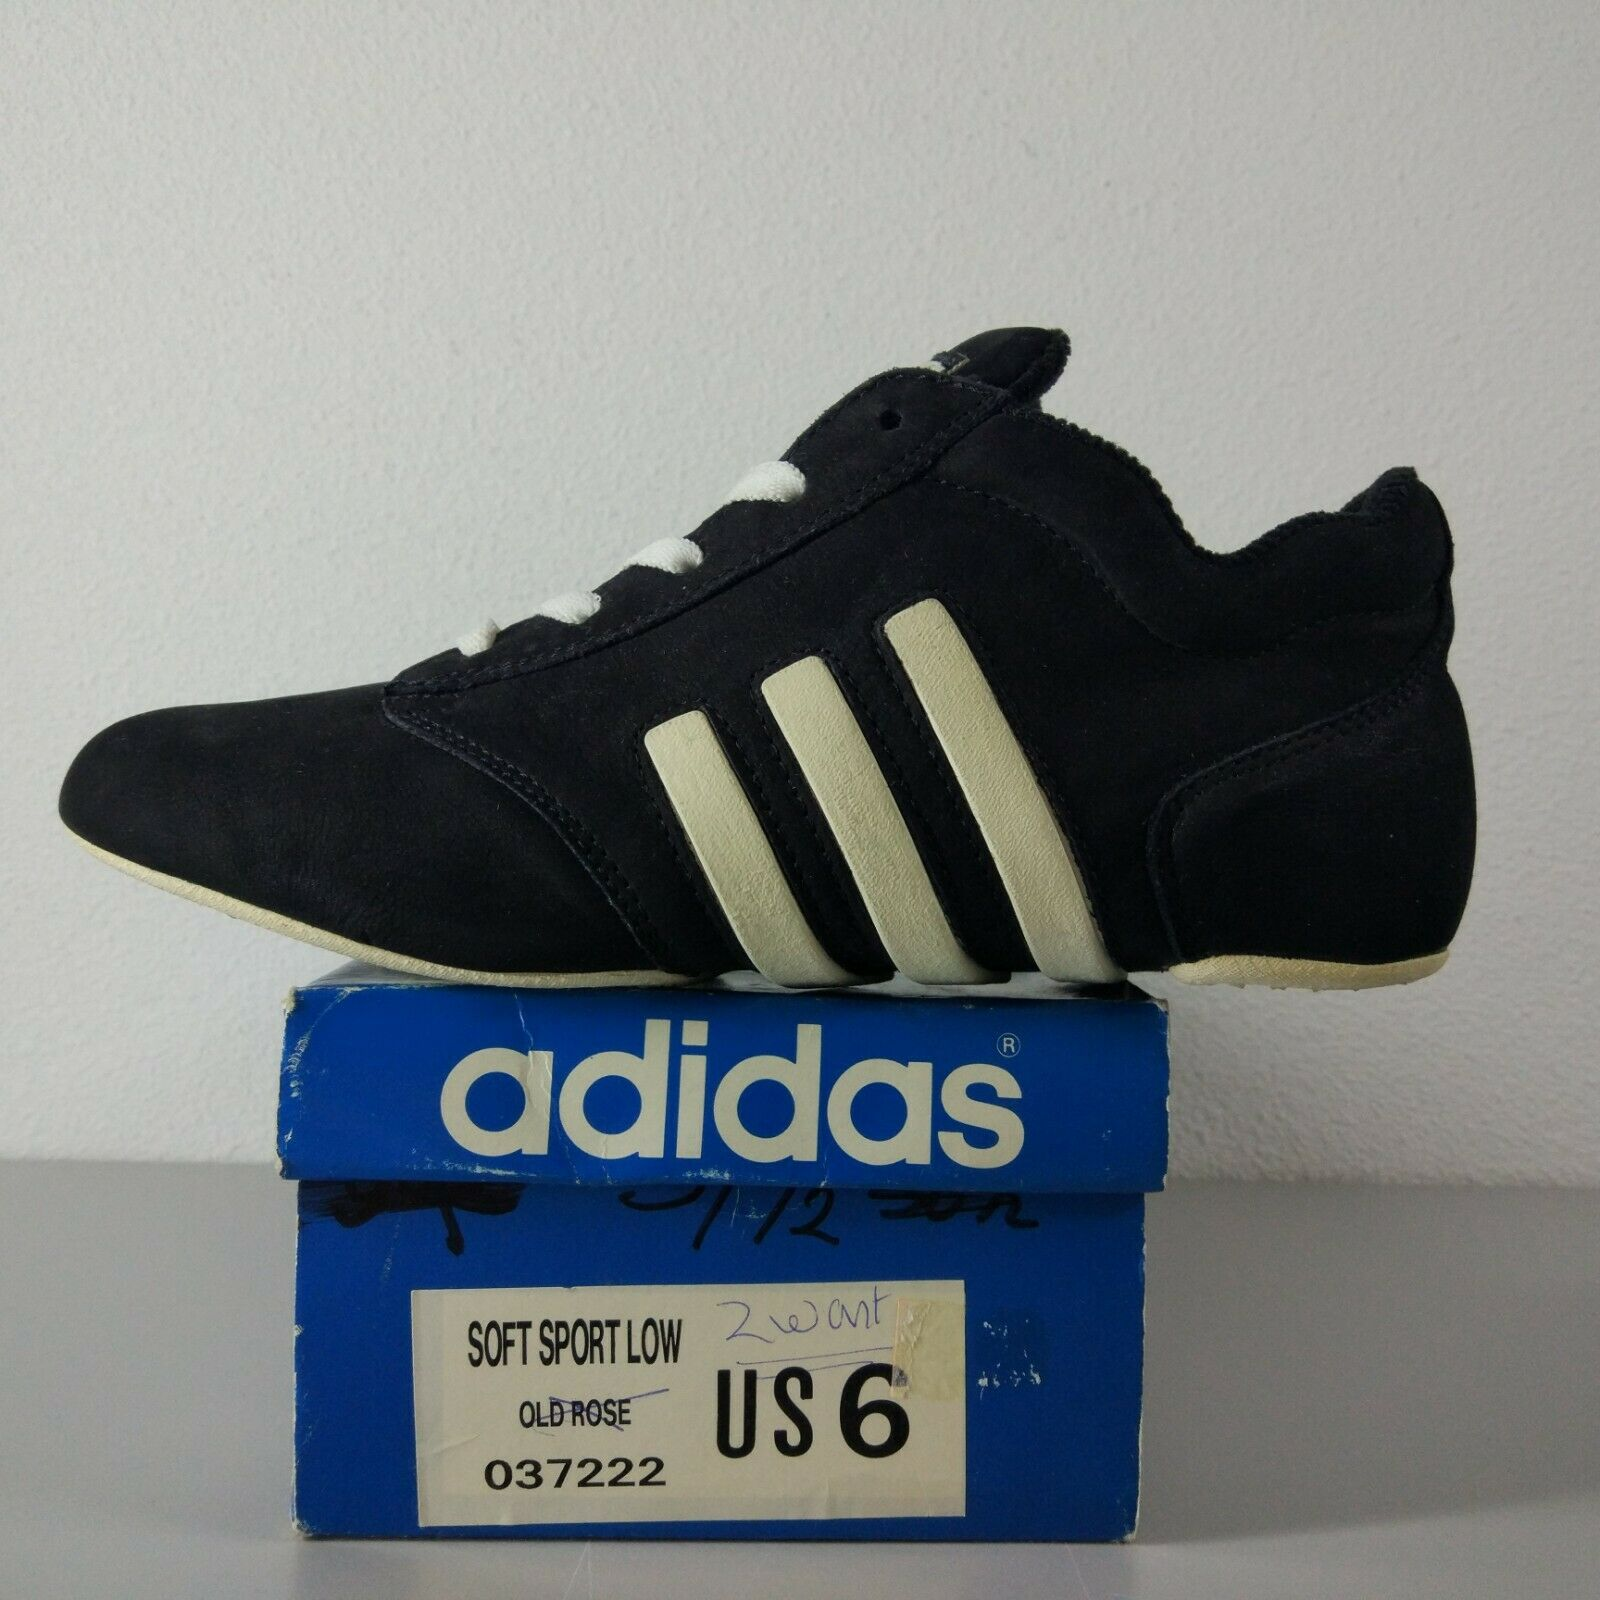 Adidas City Life US 5.5 Eur 38 2 3 Made In France Vintage 80's Torsion Rare OG